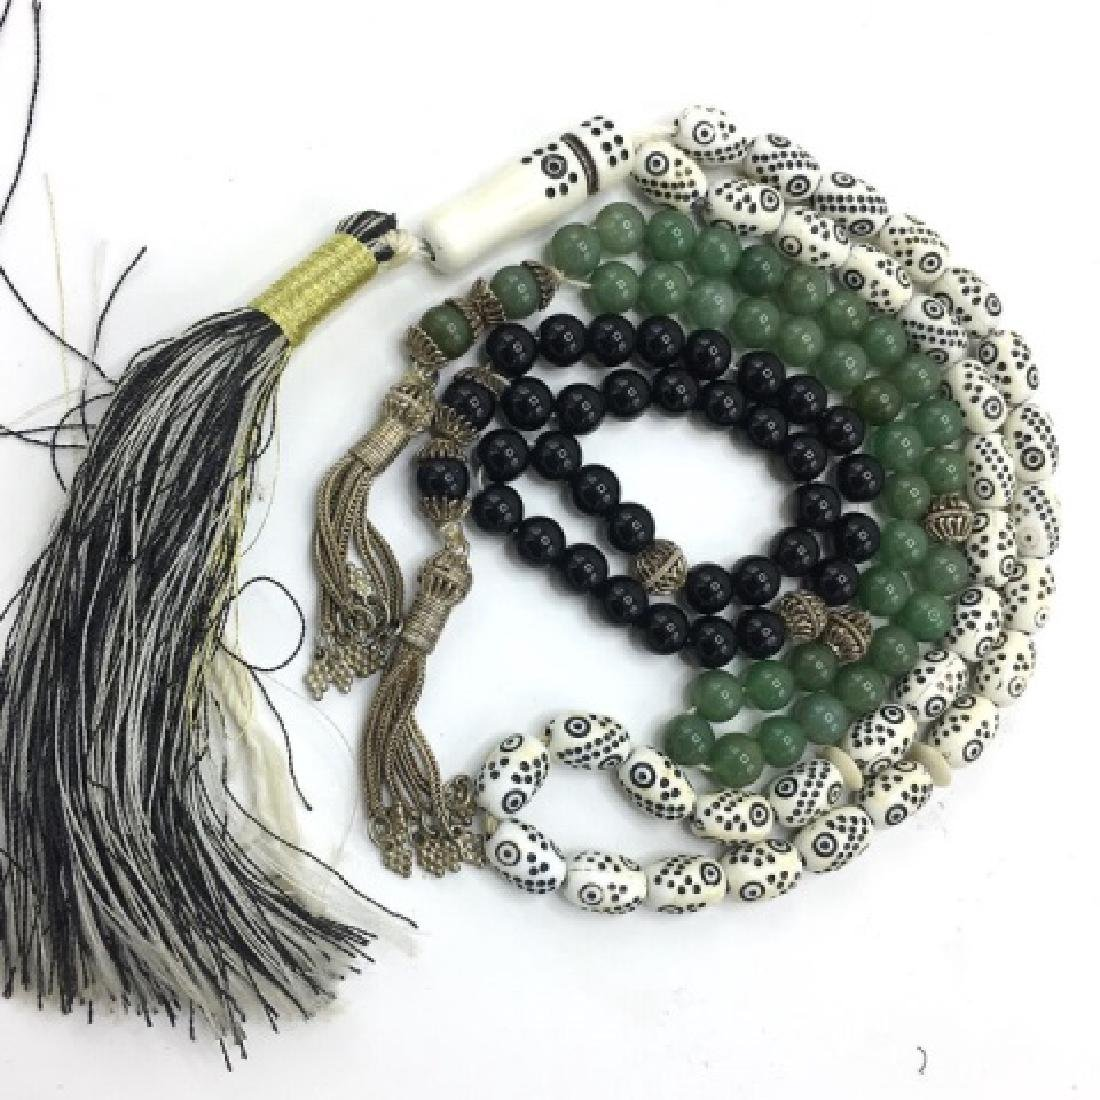 Vintage Worry Beads Silver, Jade and Onyx - 3